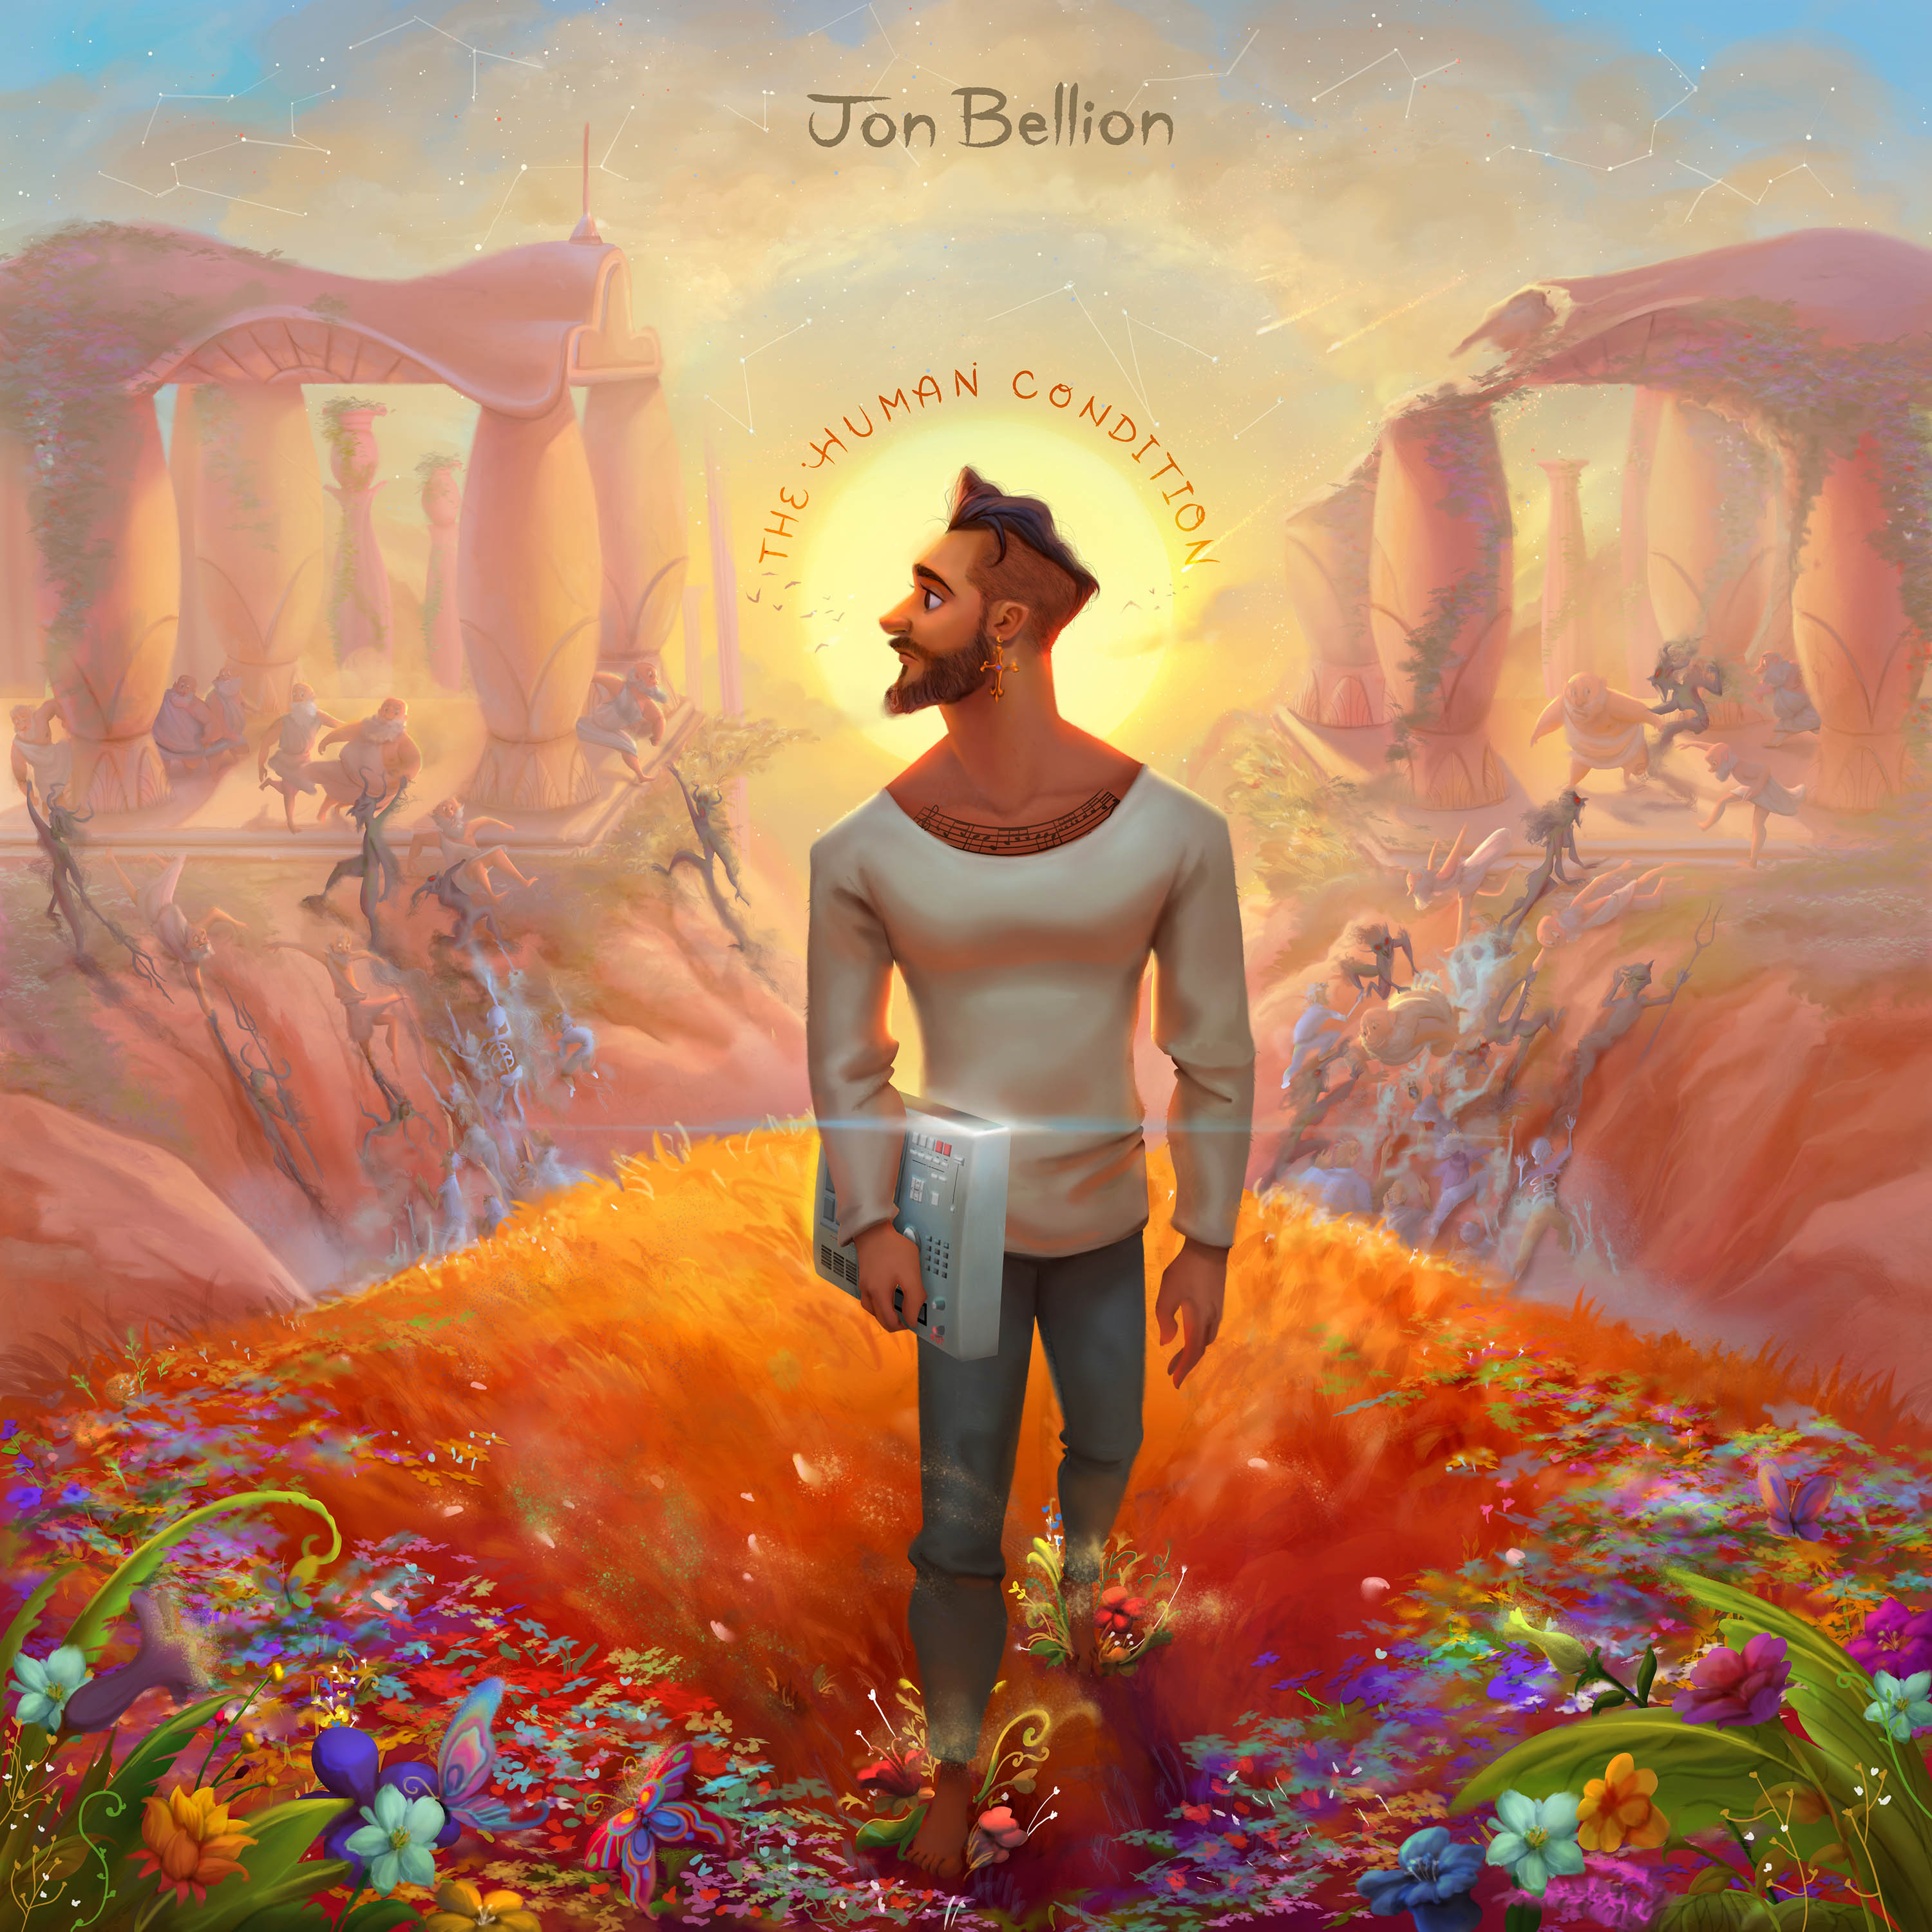 Download All Time Hit Mp3 Songs Of Kishore Kumar Asha: 480x854 Jon Bellion All Time Low Album Cover Art Android